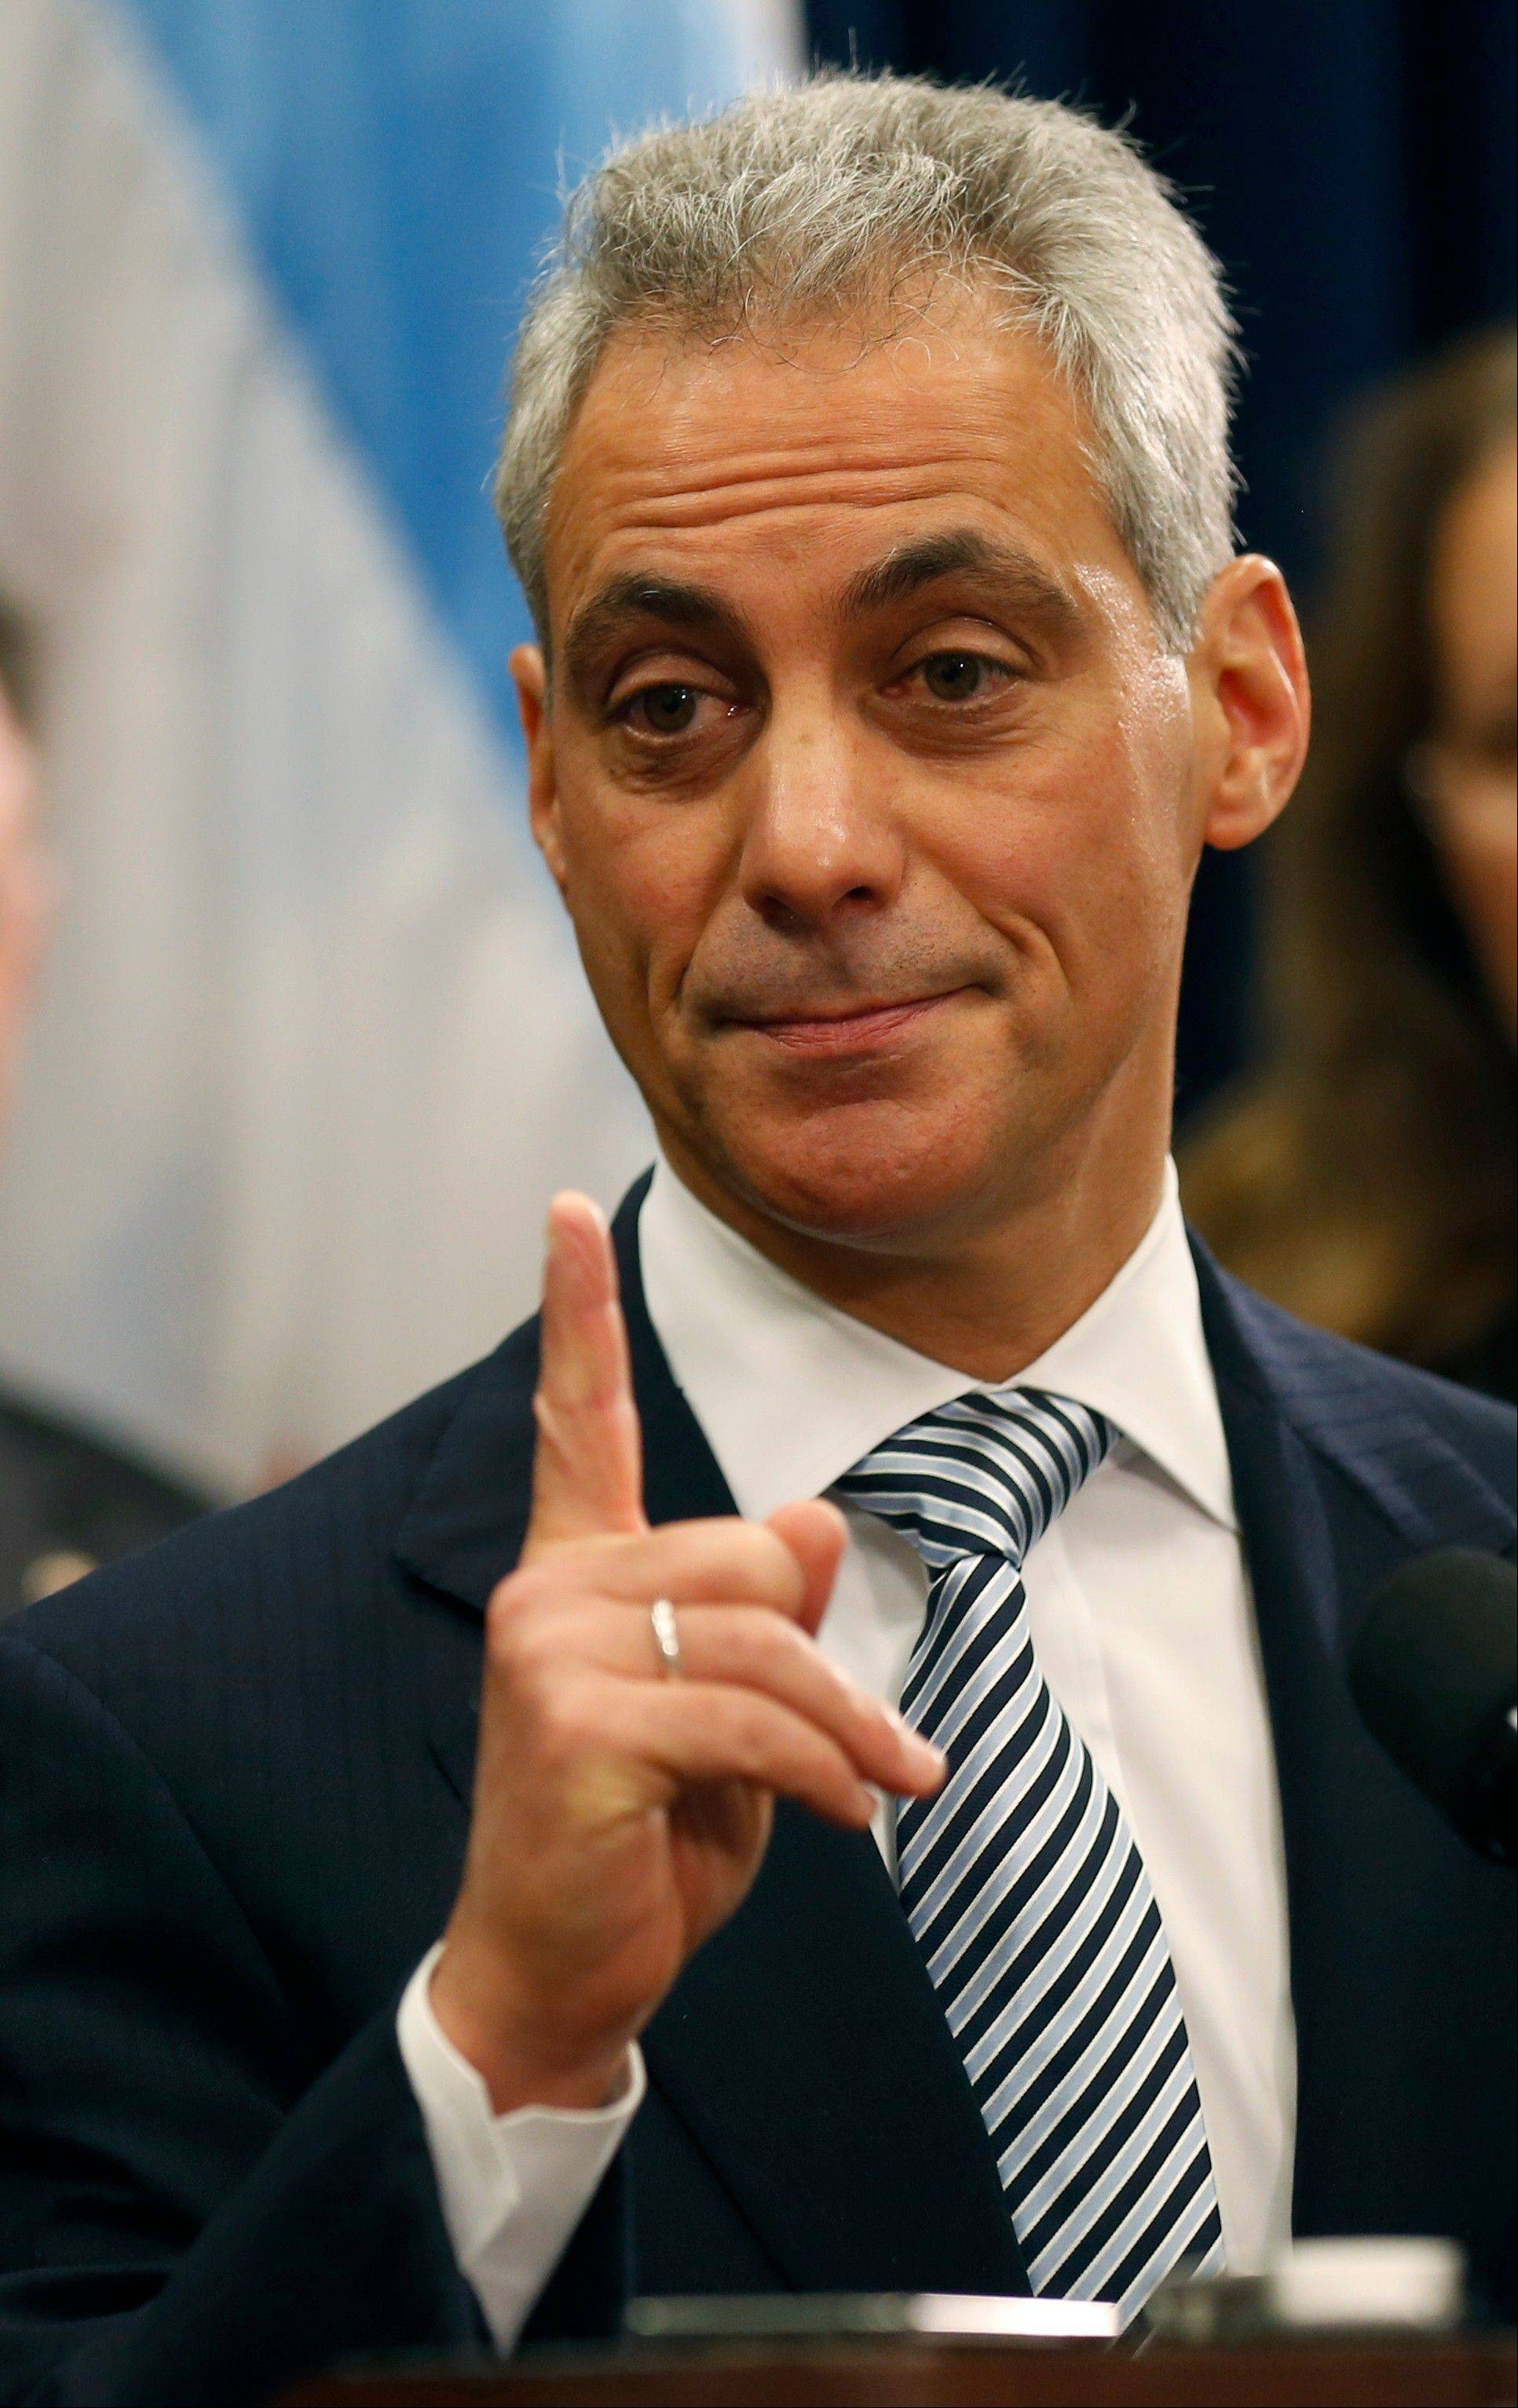 Chicago Mayor Rahm Emanuel has long been an advocate of tougher gun laws,